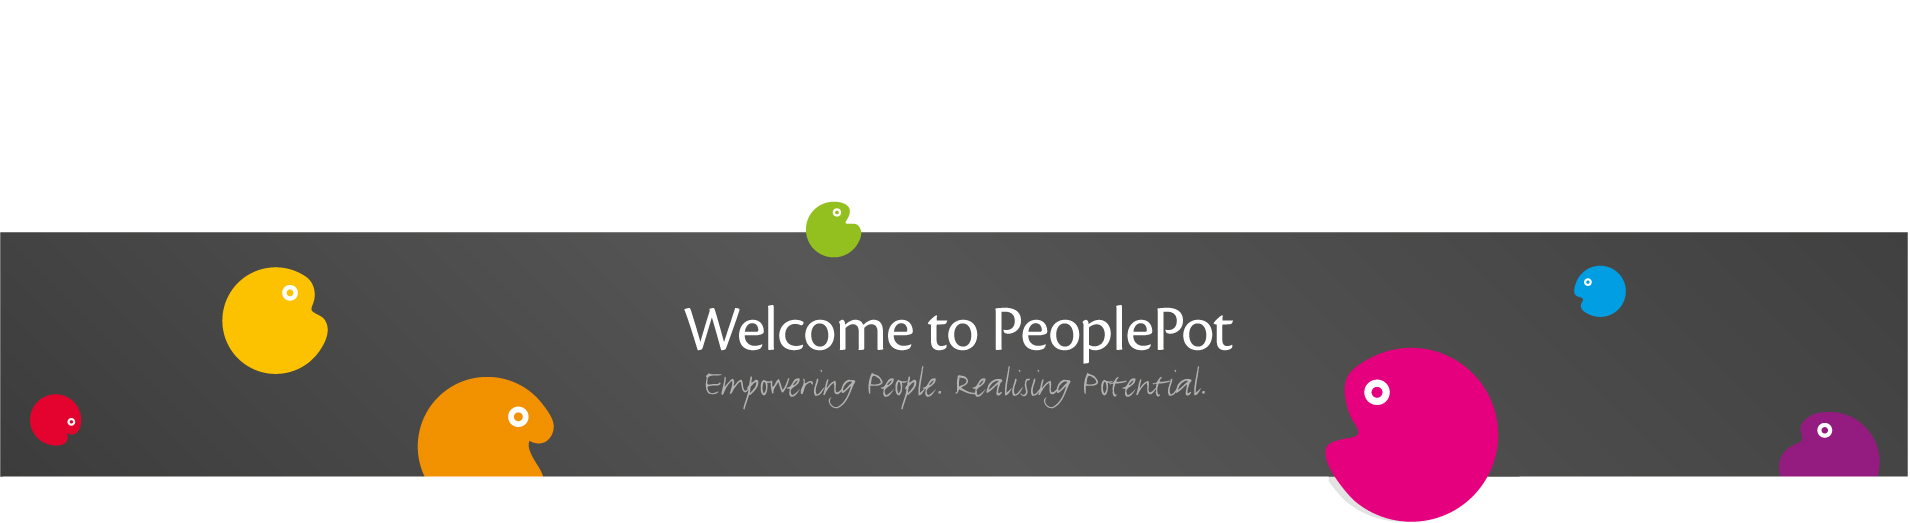 welcome to people pot